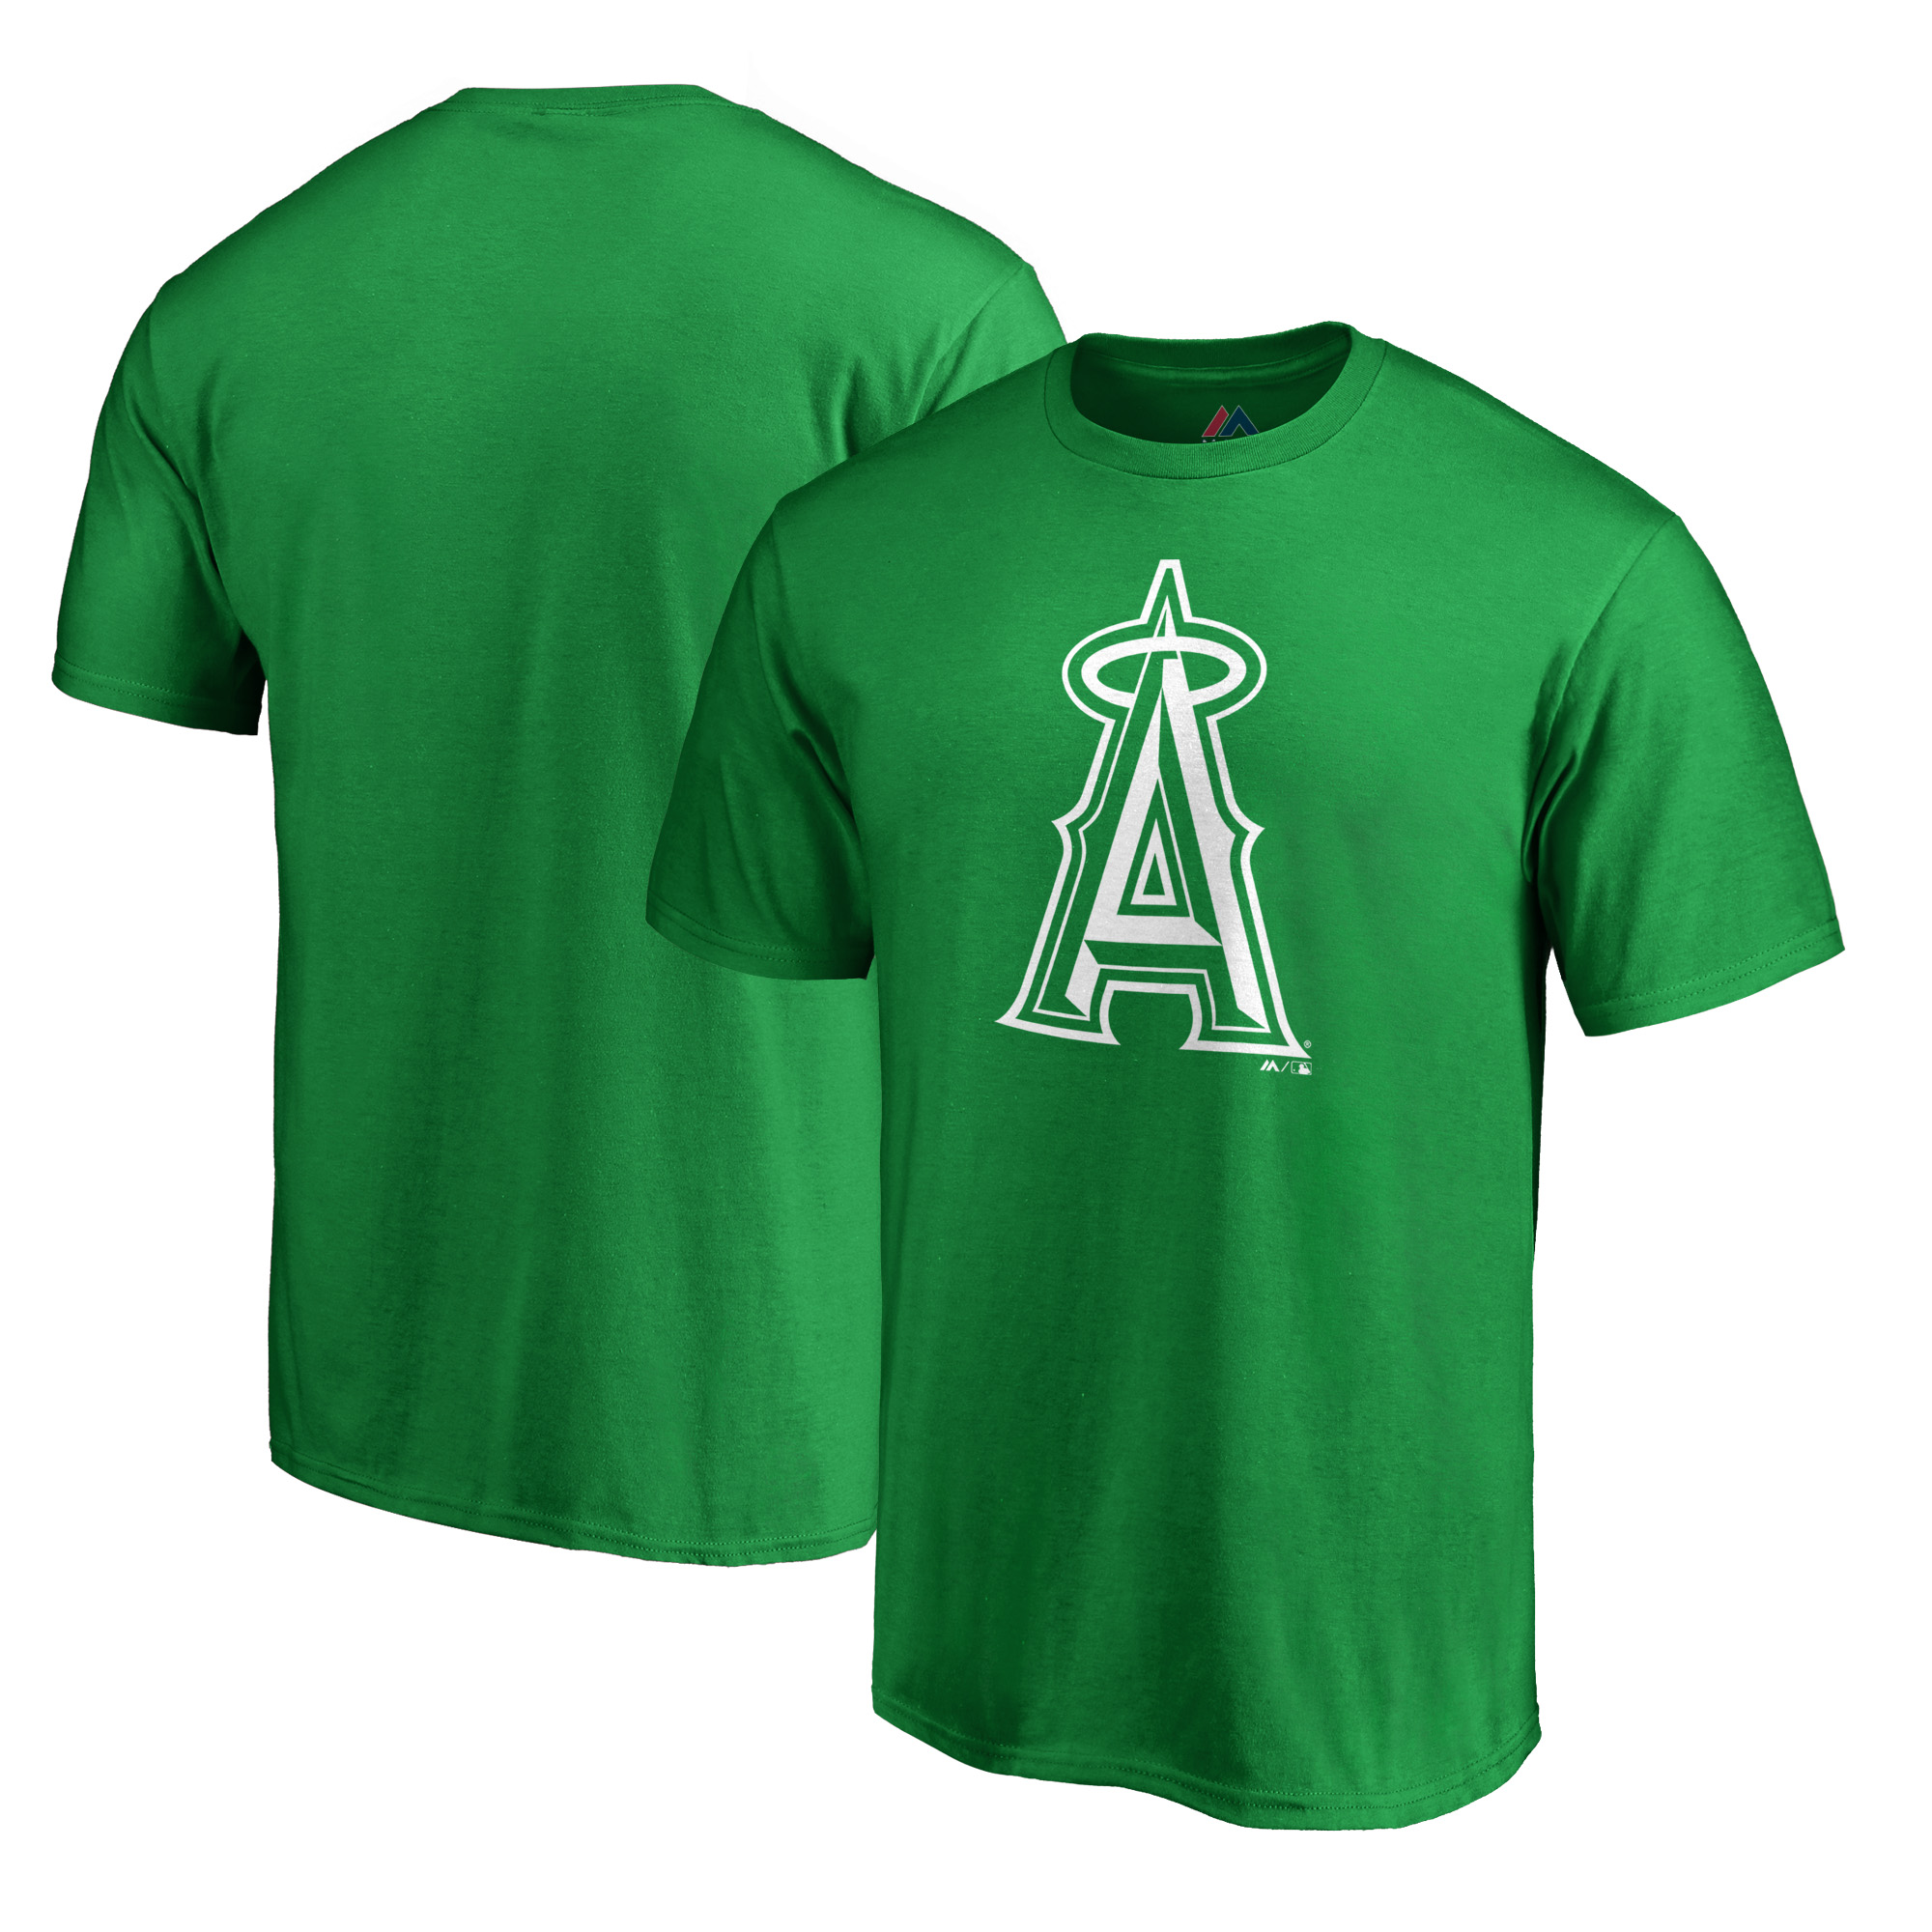 Los Angeles Angels Majestic St. Patrick's Day White Logo T-Shirt - Kelly Green